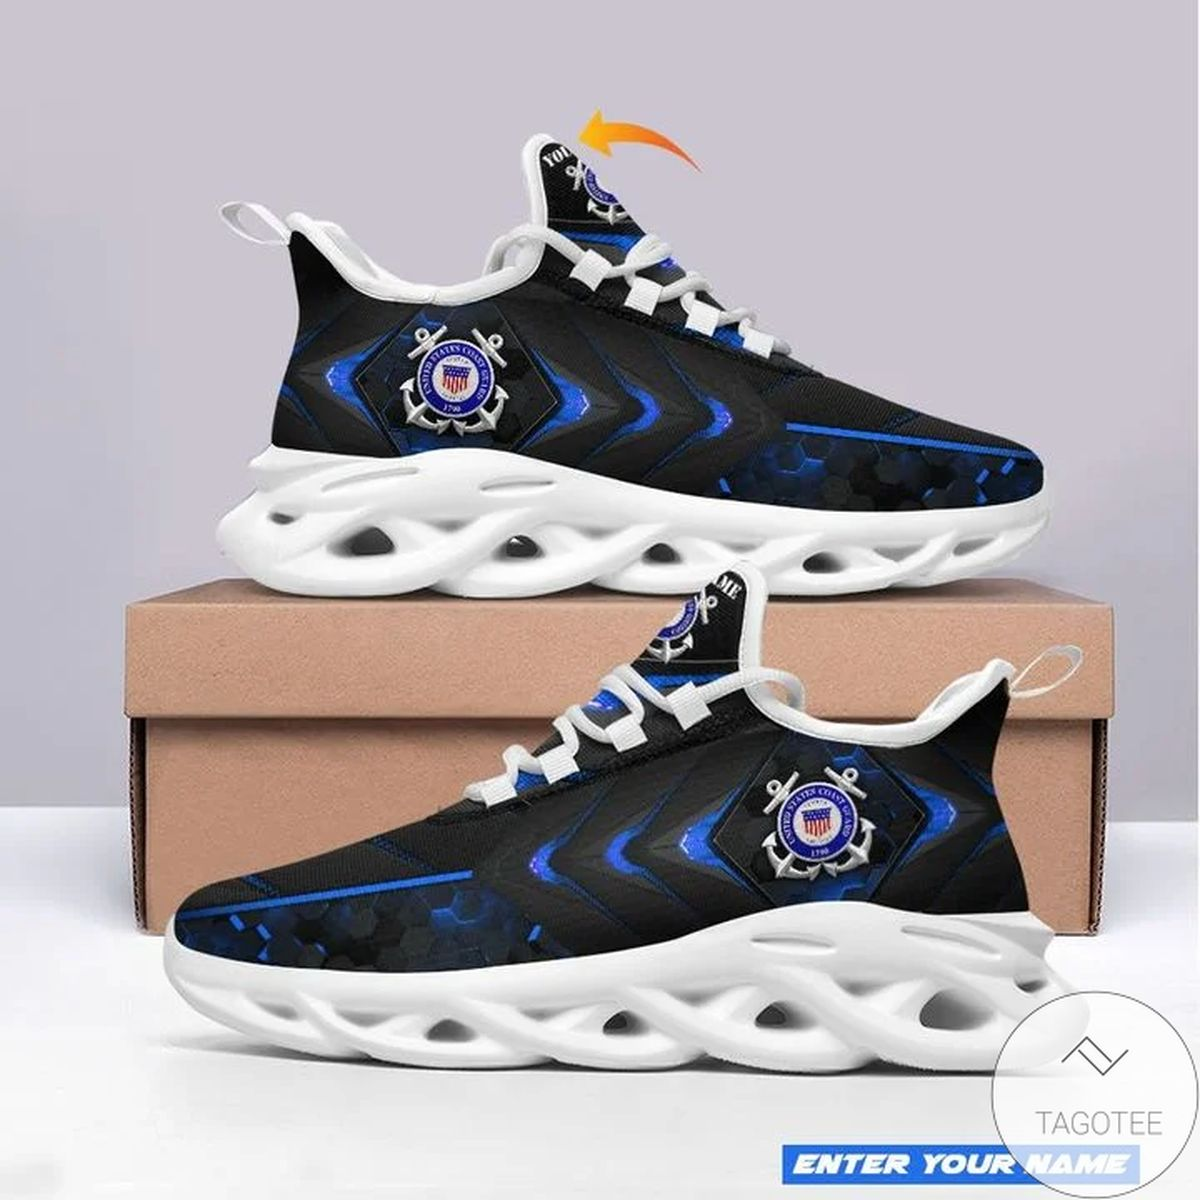 Personalized Name US Coast Guard Sneaker Max Soul Shoes